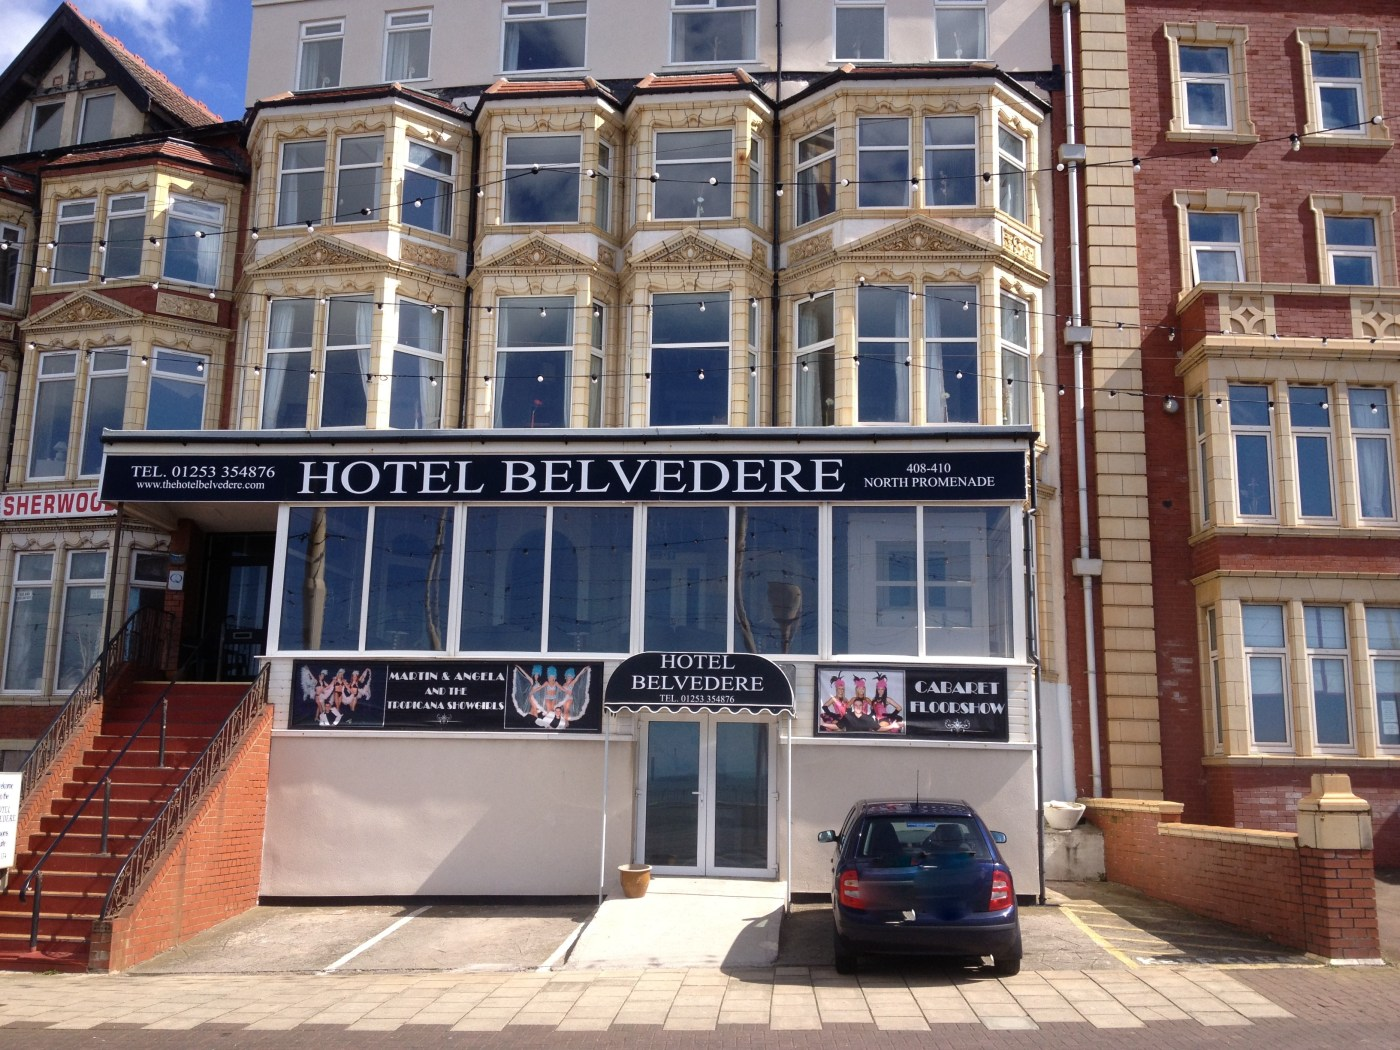 Hotel Belvedere Perfection Prom 01253 354876